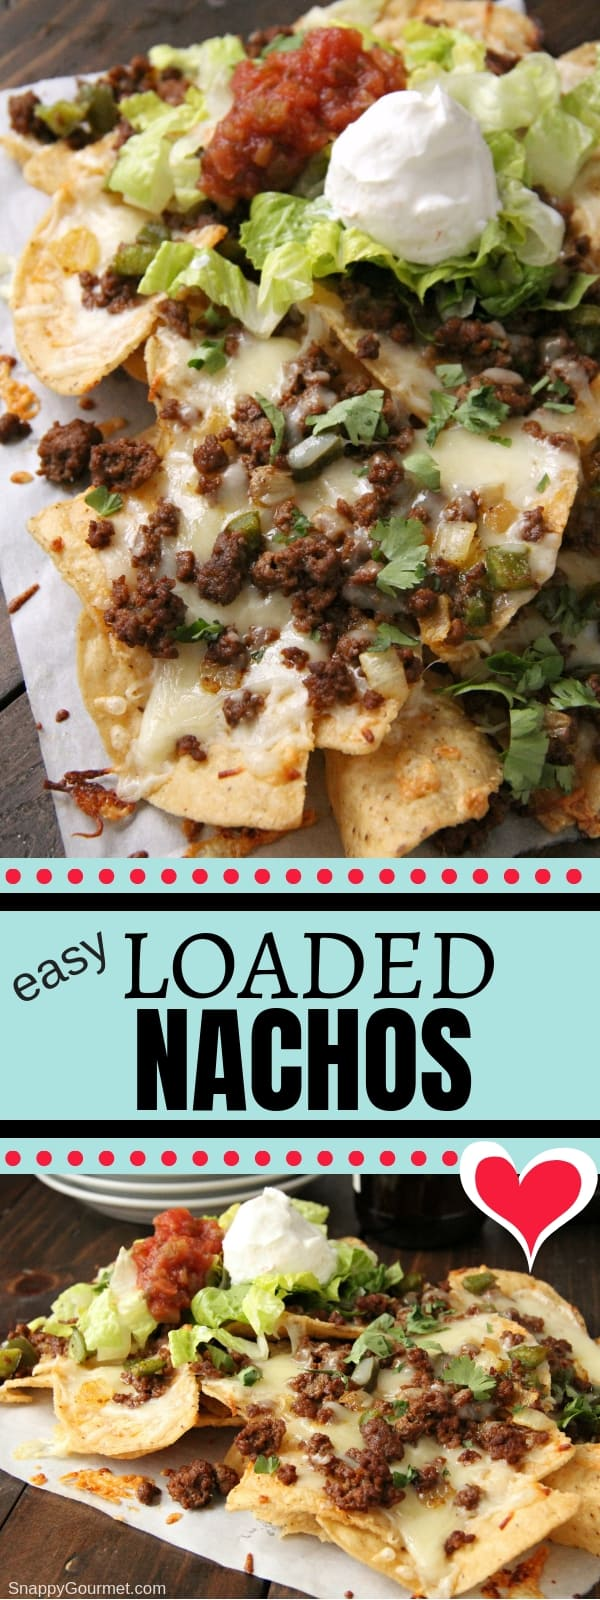 Loaded Nachos collage